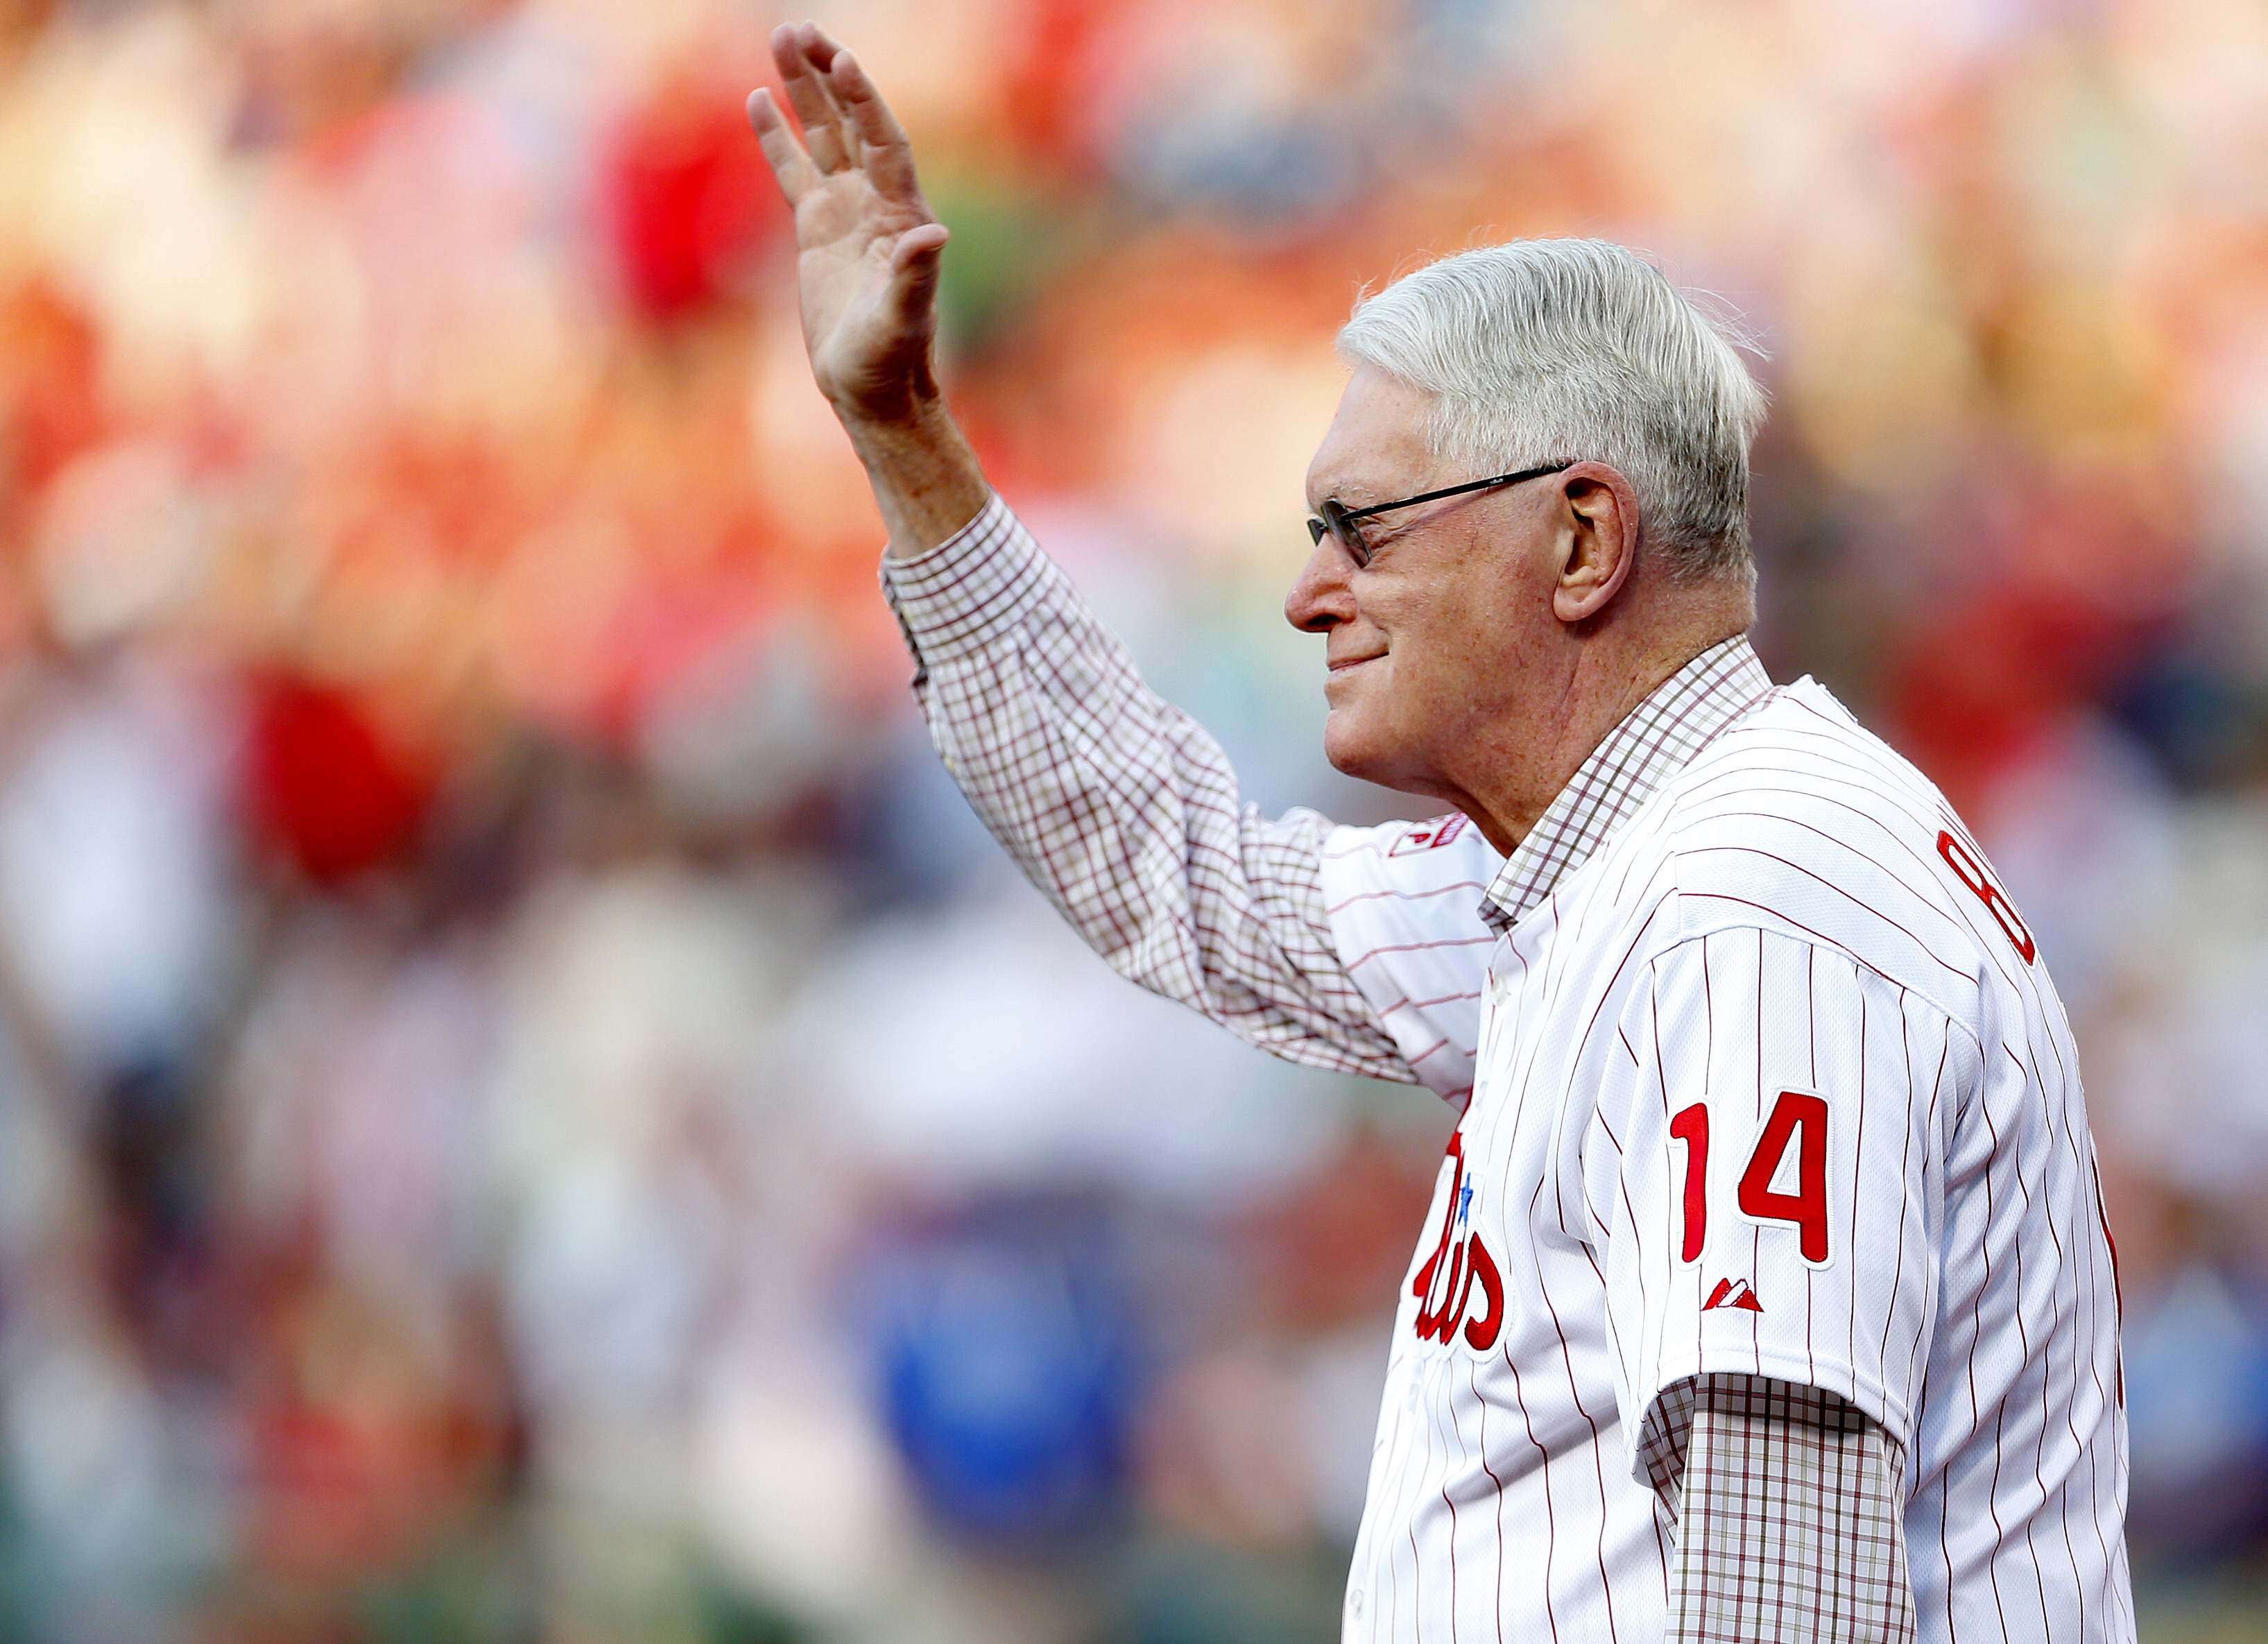 Jim Bunning is introduced during a ceremony at Citizens Bank Park on Aug. 9, 2014 in Philadelphia, PA.